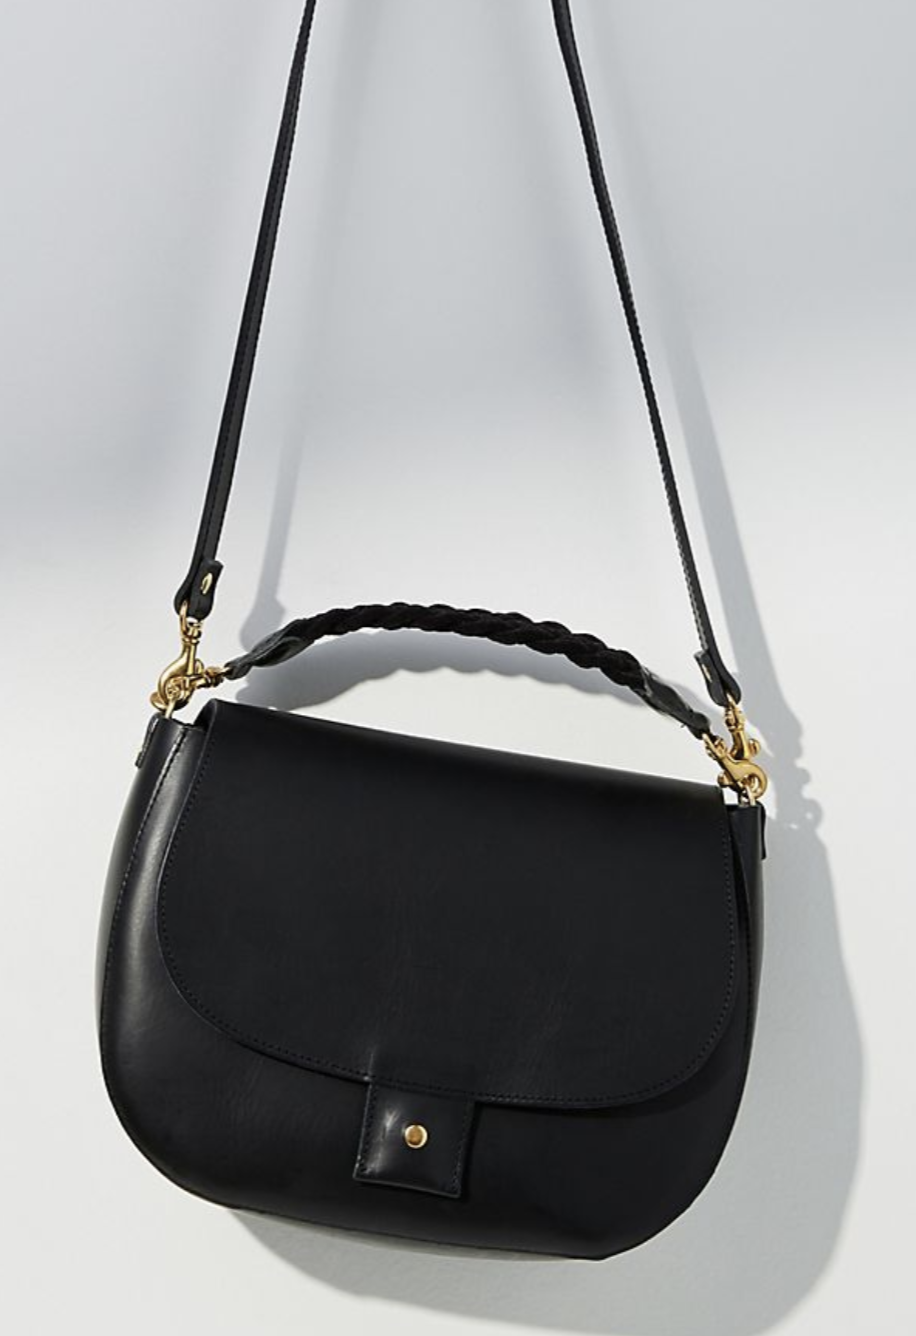 Clare V Herieth Bag ($378)